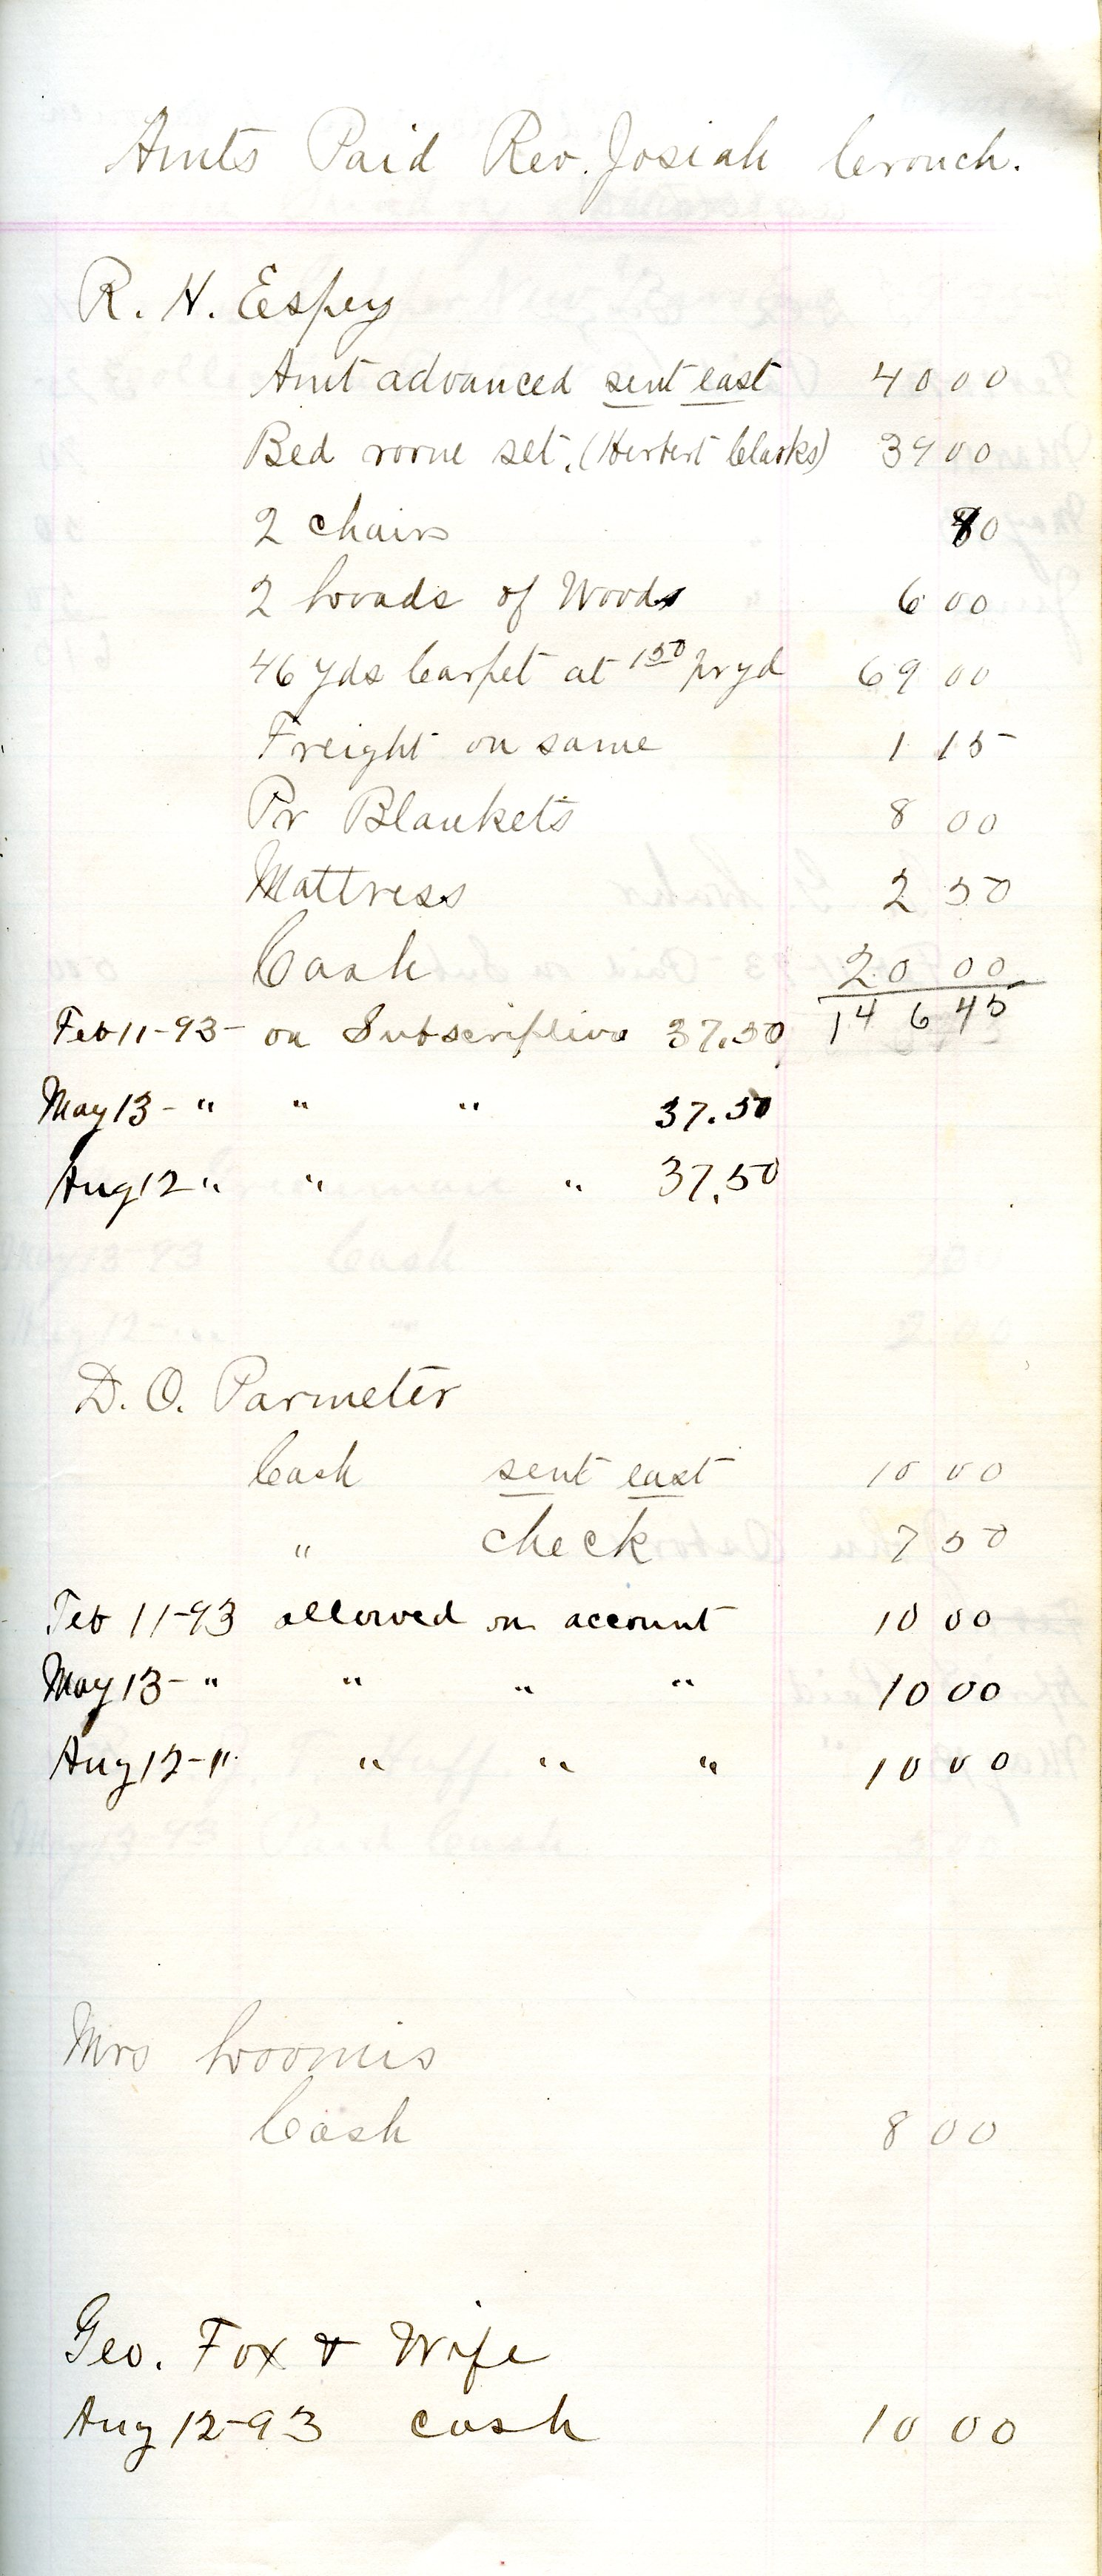 Oysterville Baptist Church Ledger Page, 1893